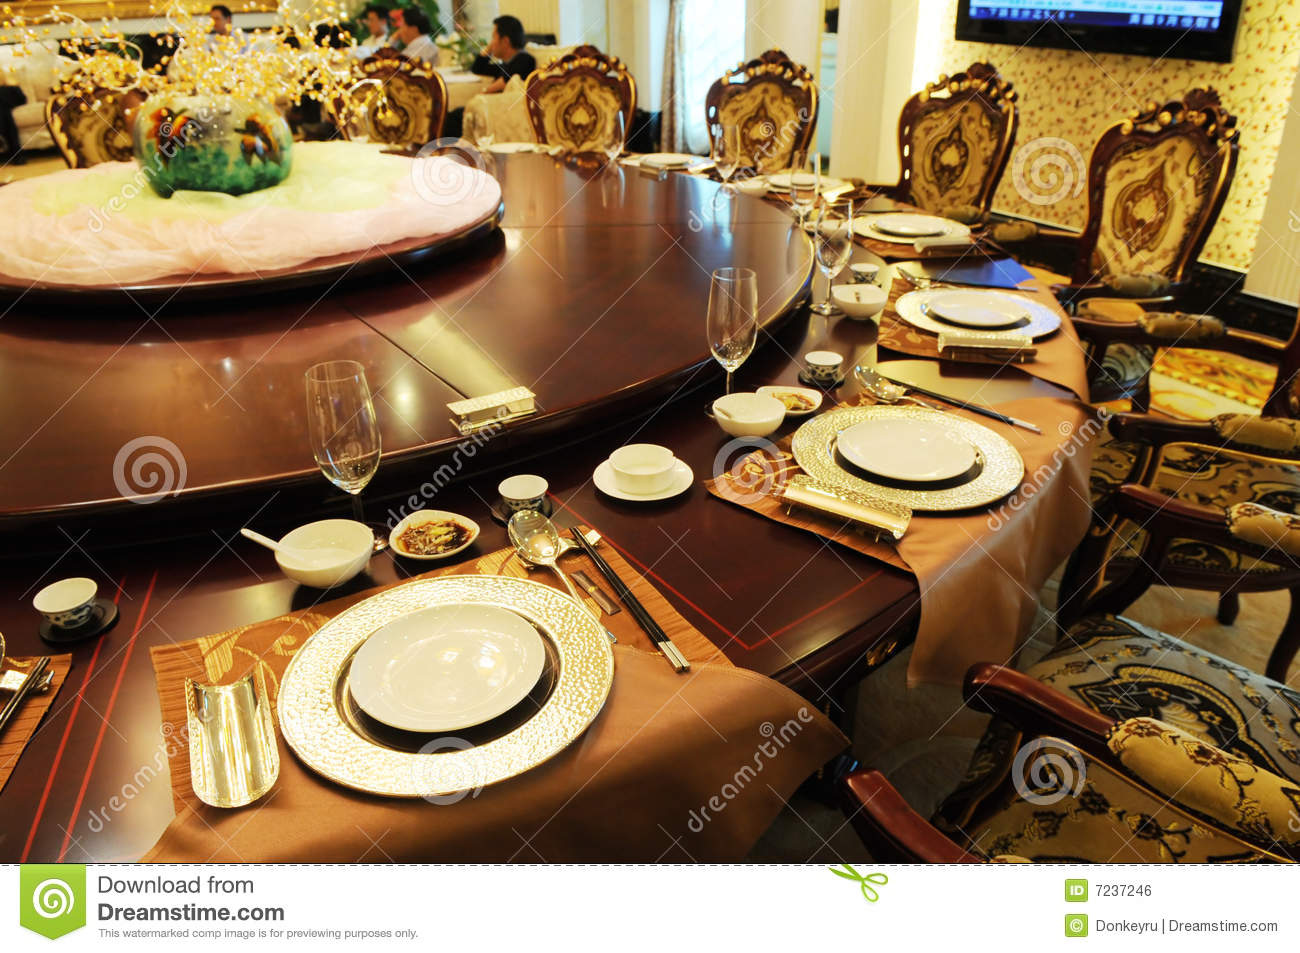 The Luxury Formal Dinner Setting Royalty Free Stock Image